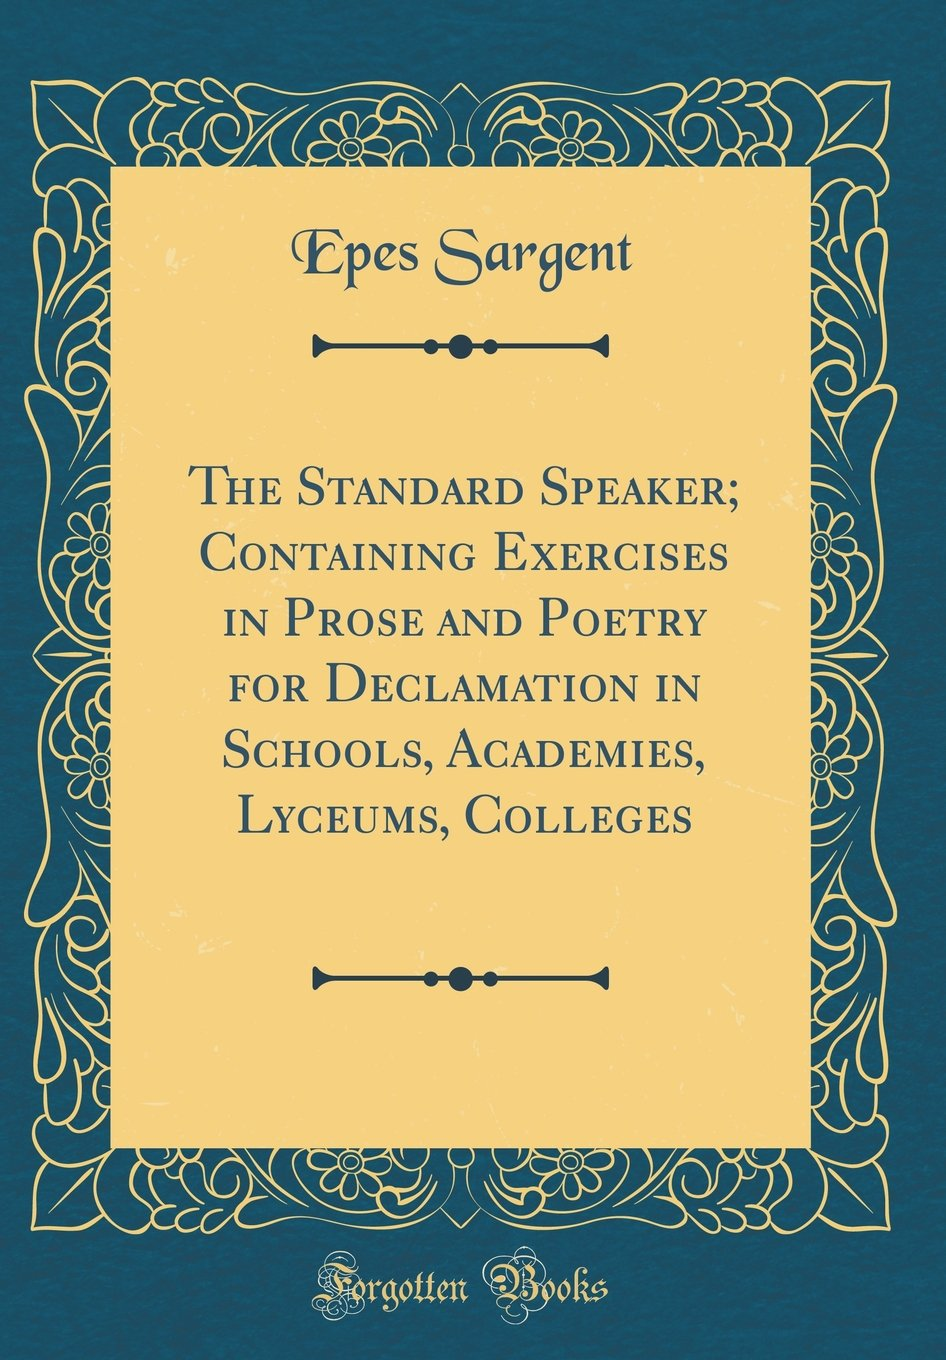 The Standard Speaker; Containing Exercises in Prose and Poetry for Declamation in Schools, Academies, Lyceums, Colleges (Classic Reprint) PDF